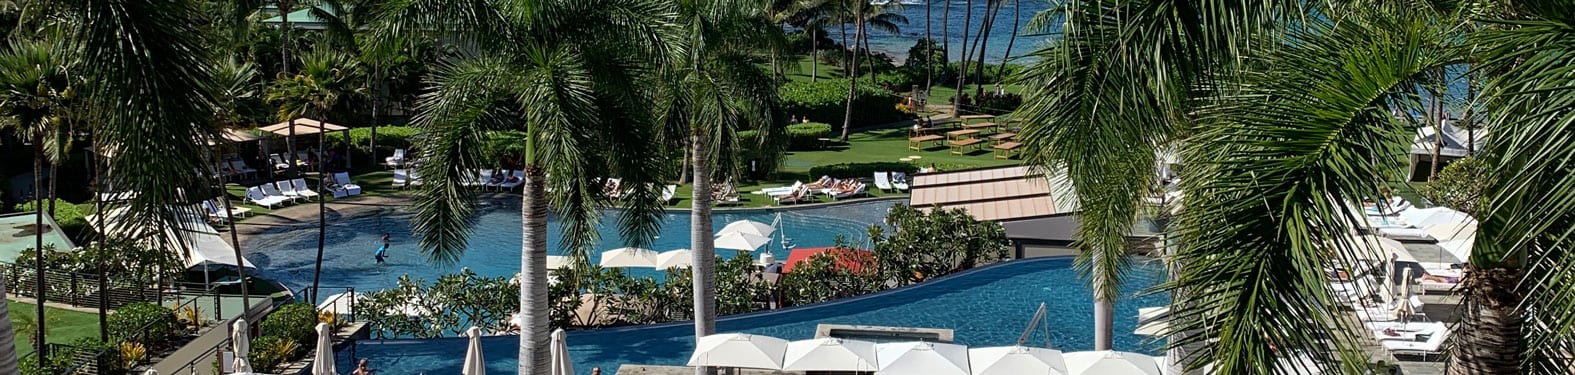 Andaz Maui | A Wailea Resort With Style